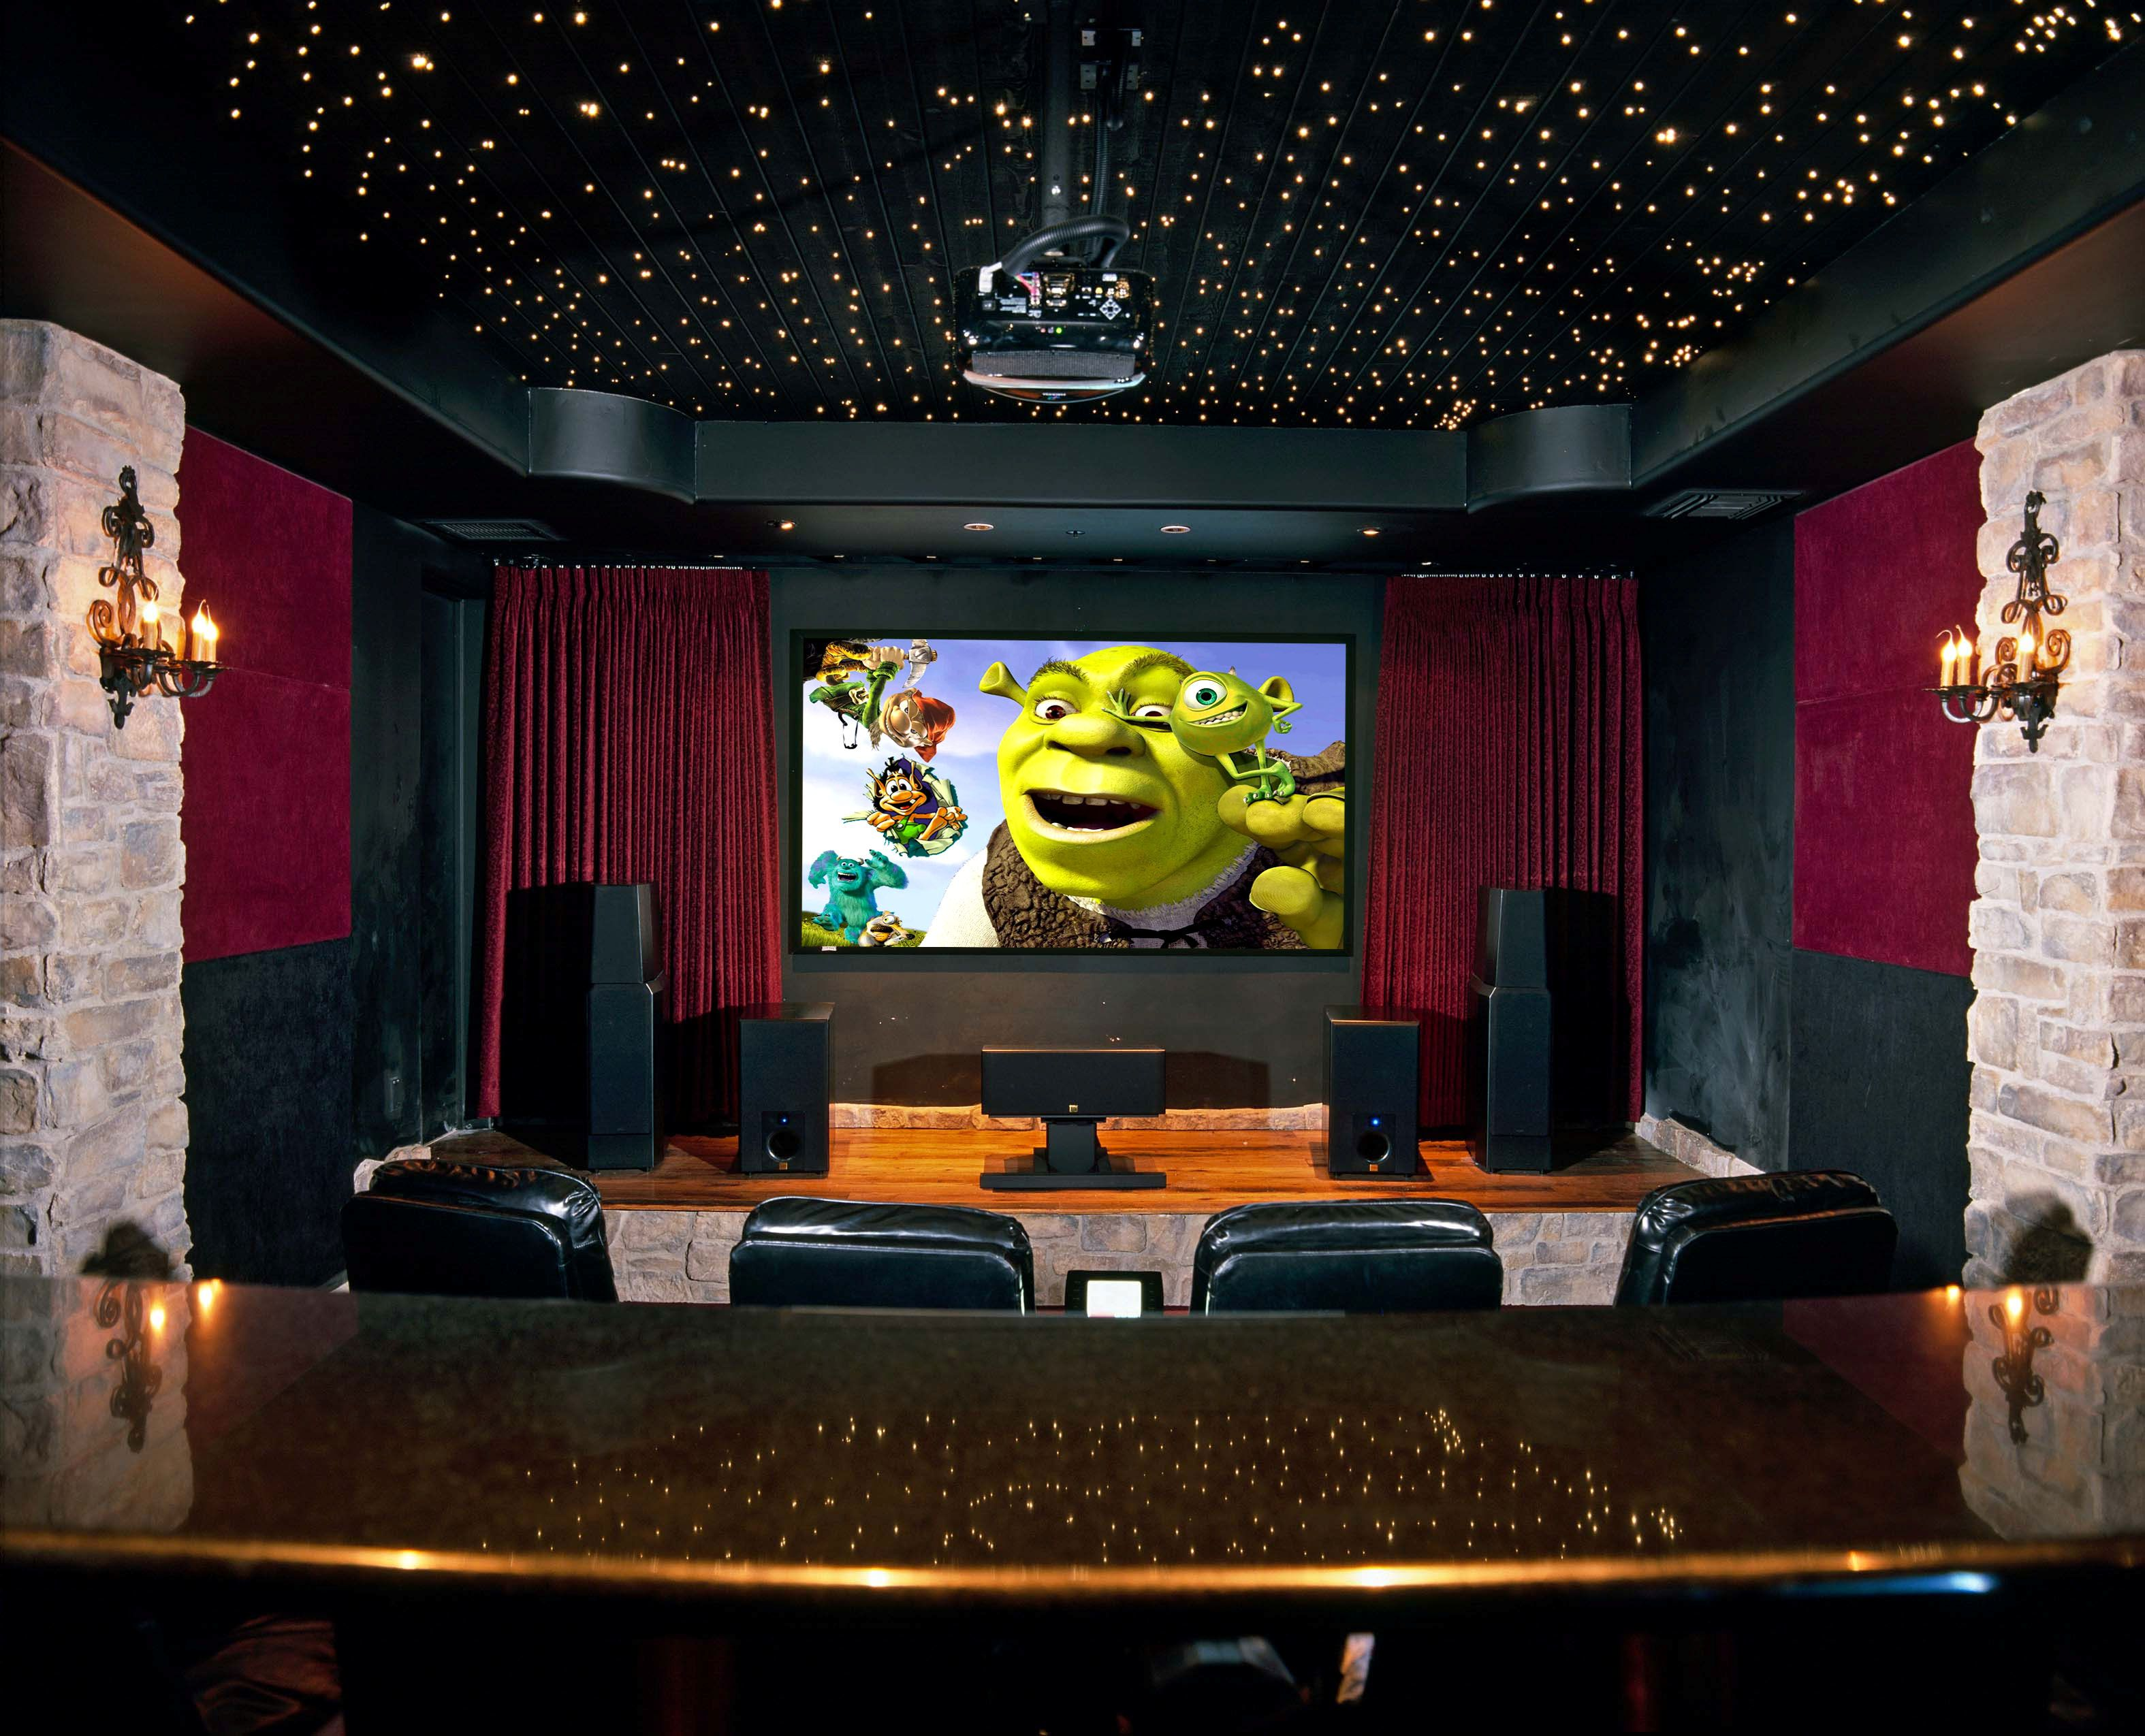 Home Theater Furniture Houston Concept Decoration Decorating Beautiful Home Theater Room With Ceiling Design Full Of .